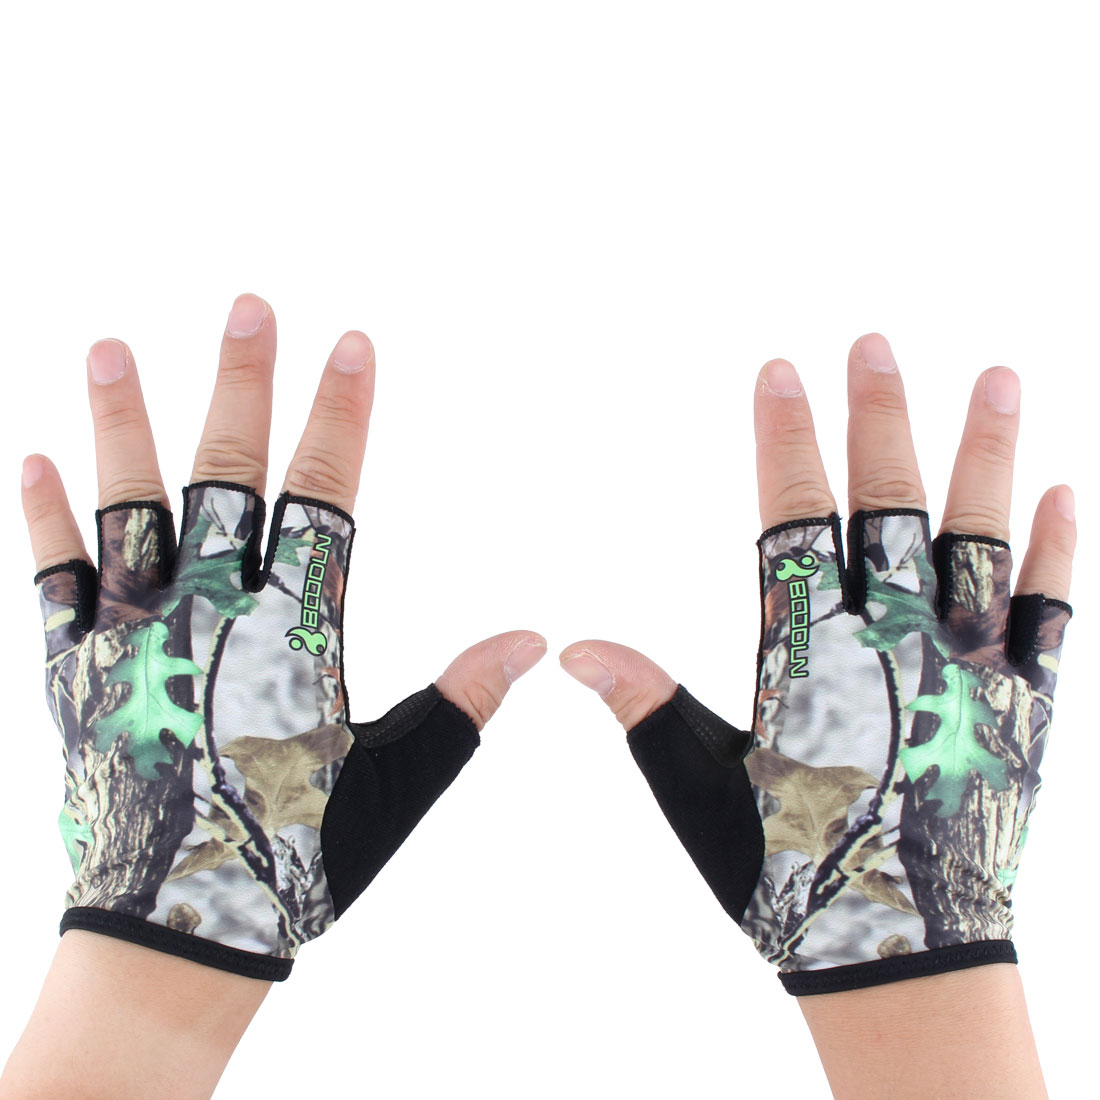 BOODUN Authorized Unisex Gym Workout Training Anti Skid Breathable Fitness Half Finger Gloves #1 XL Size Pair